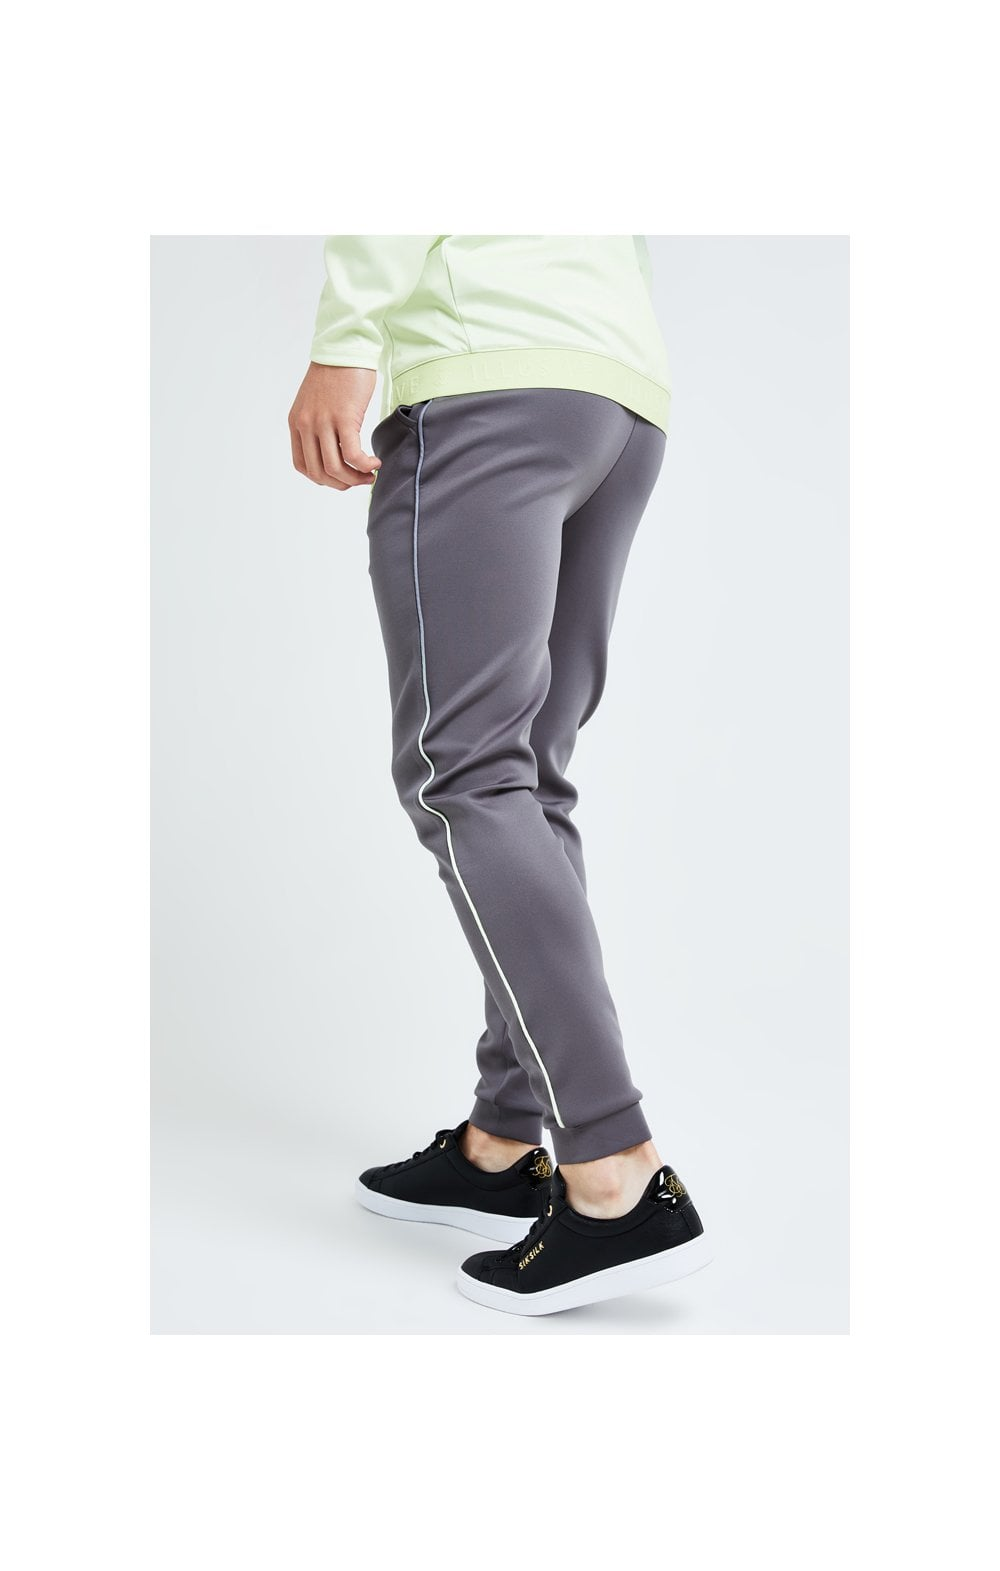 Illusive London Blaze Fade Piping Jogger - Dark Grey & Lime (2)